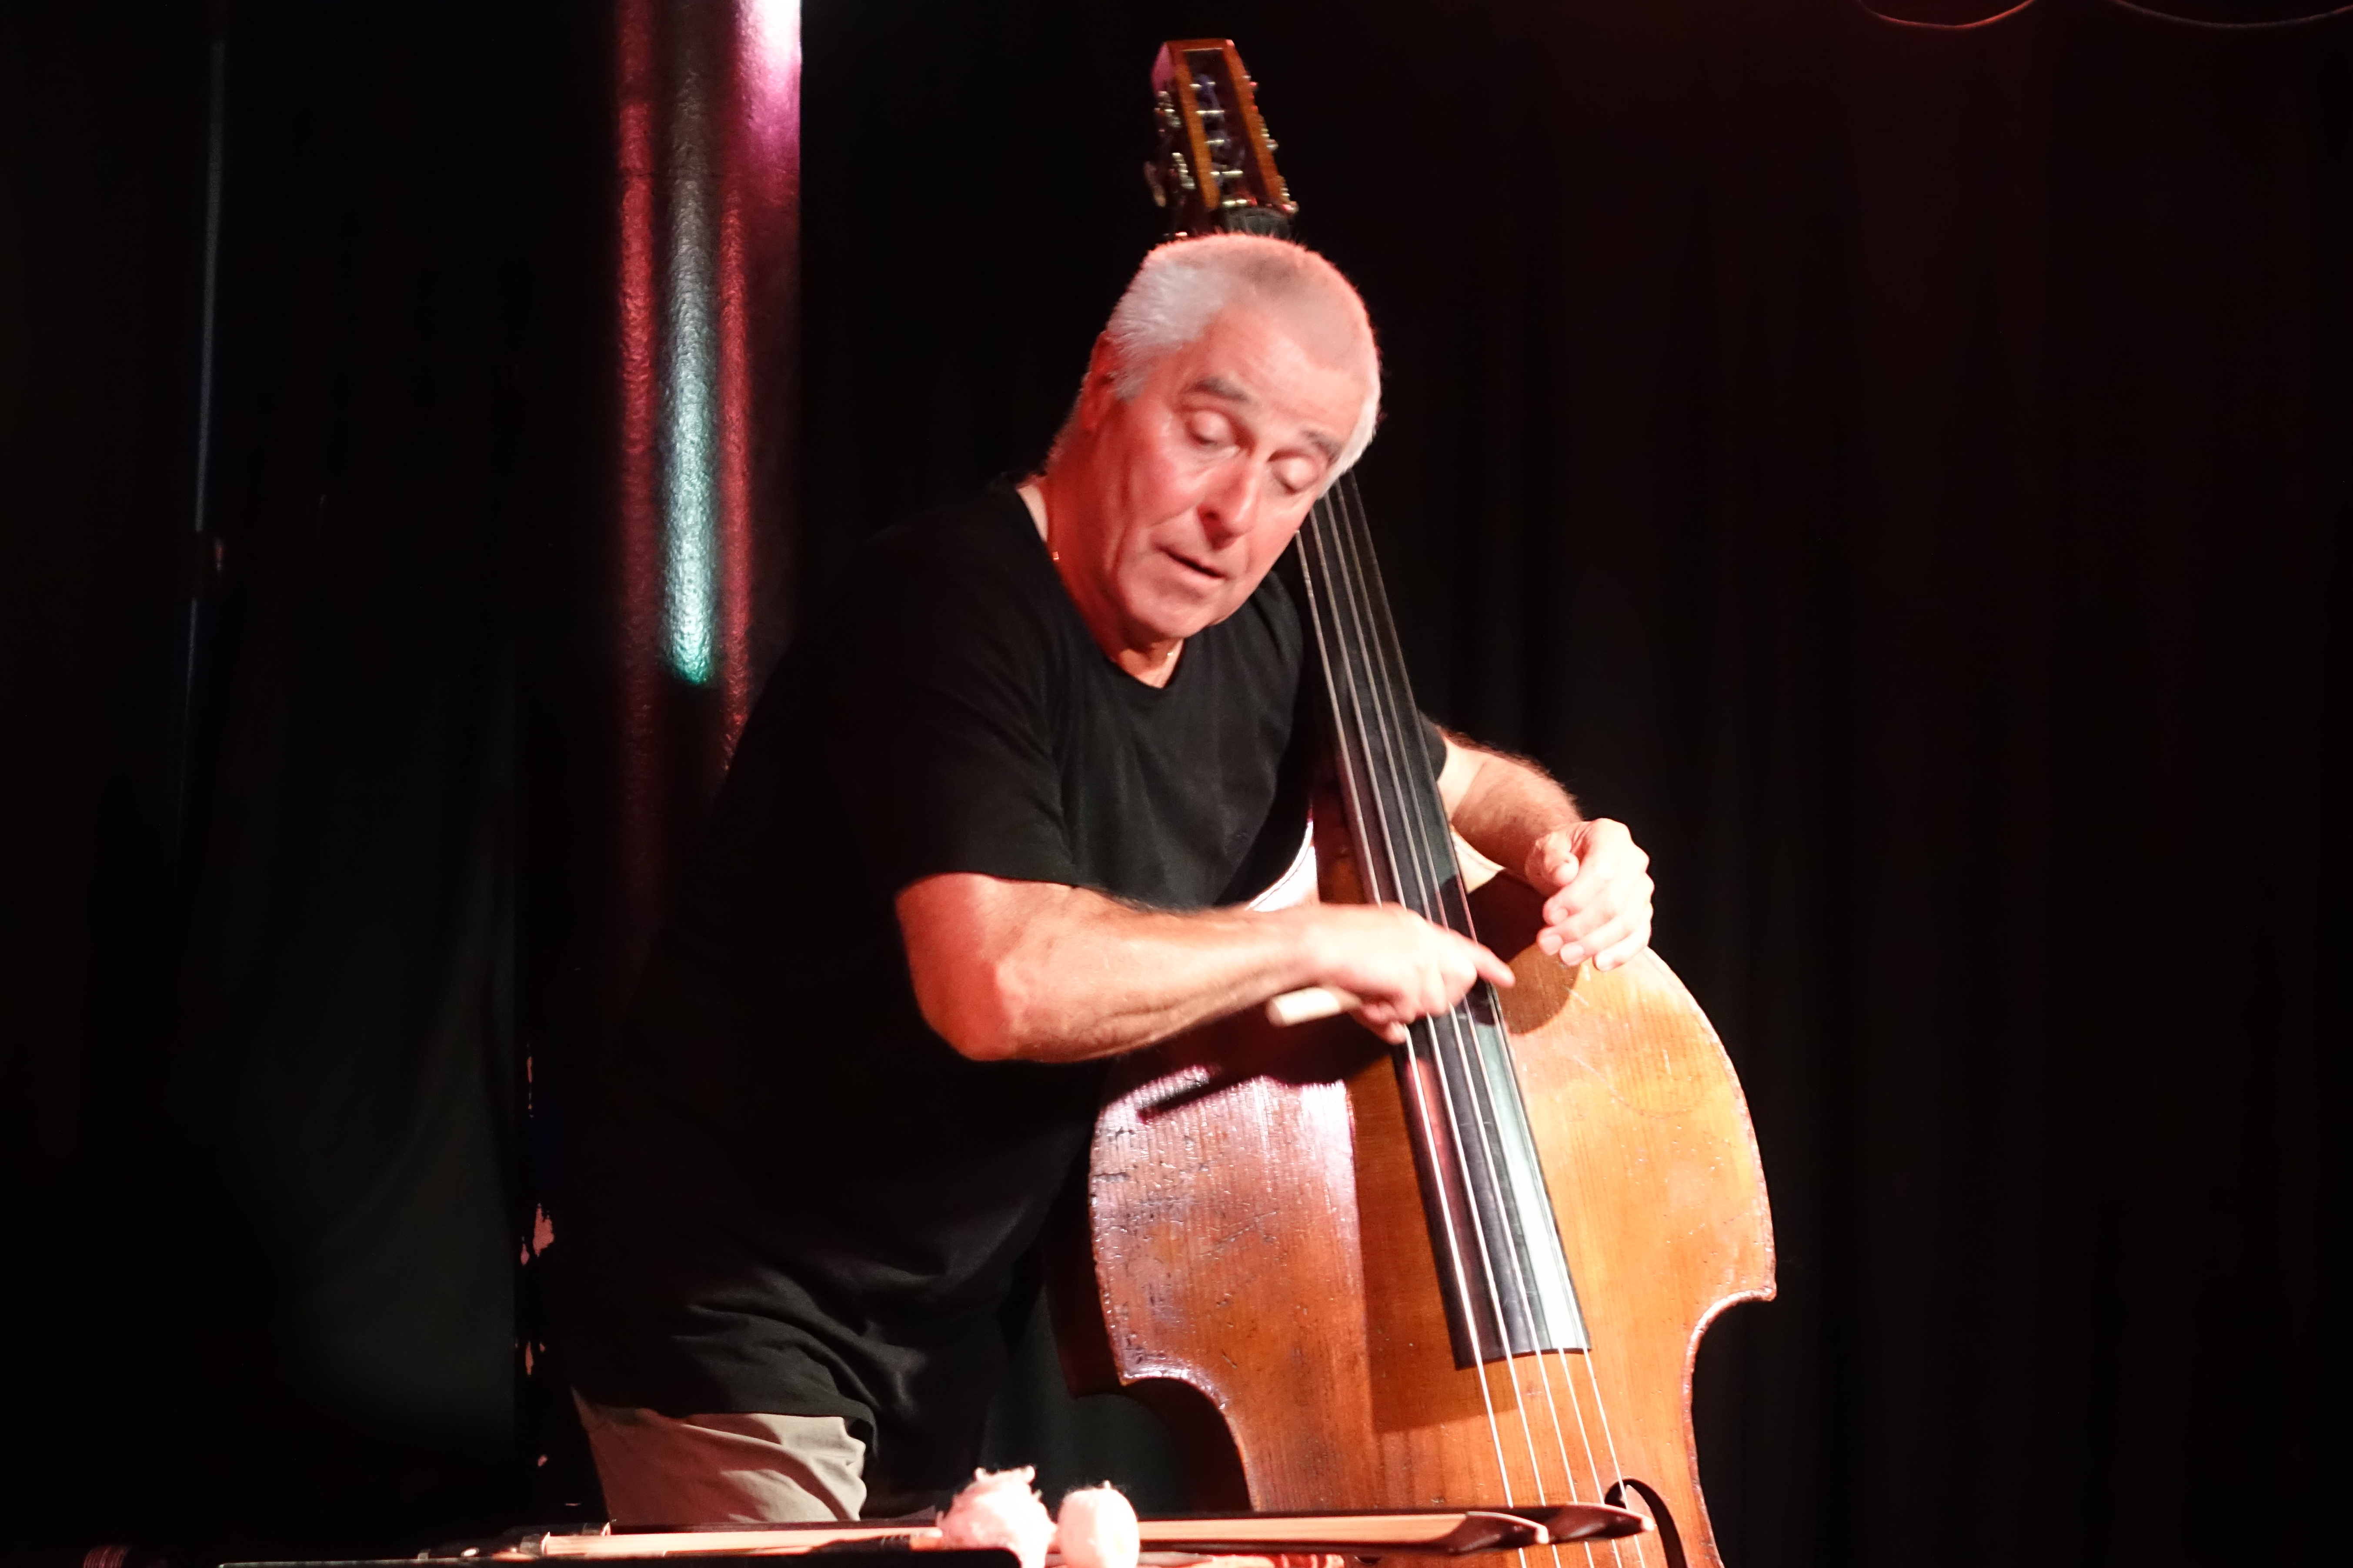 Barry Guy at the Vortex, London in July 2018